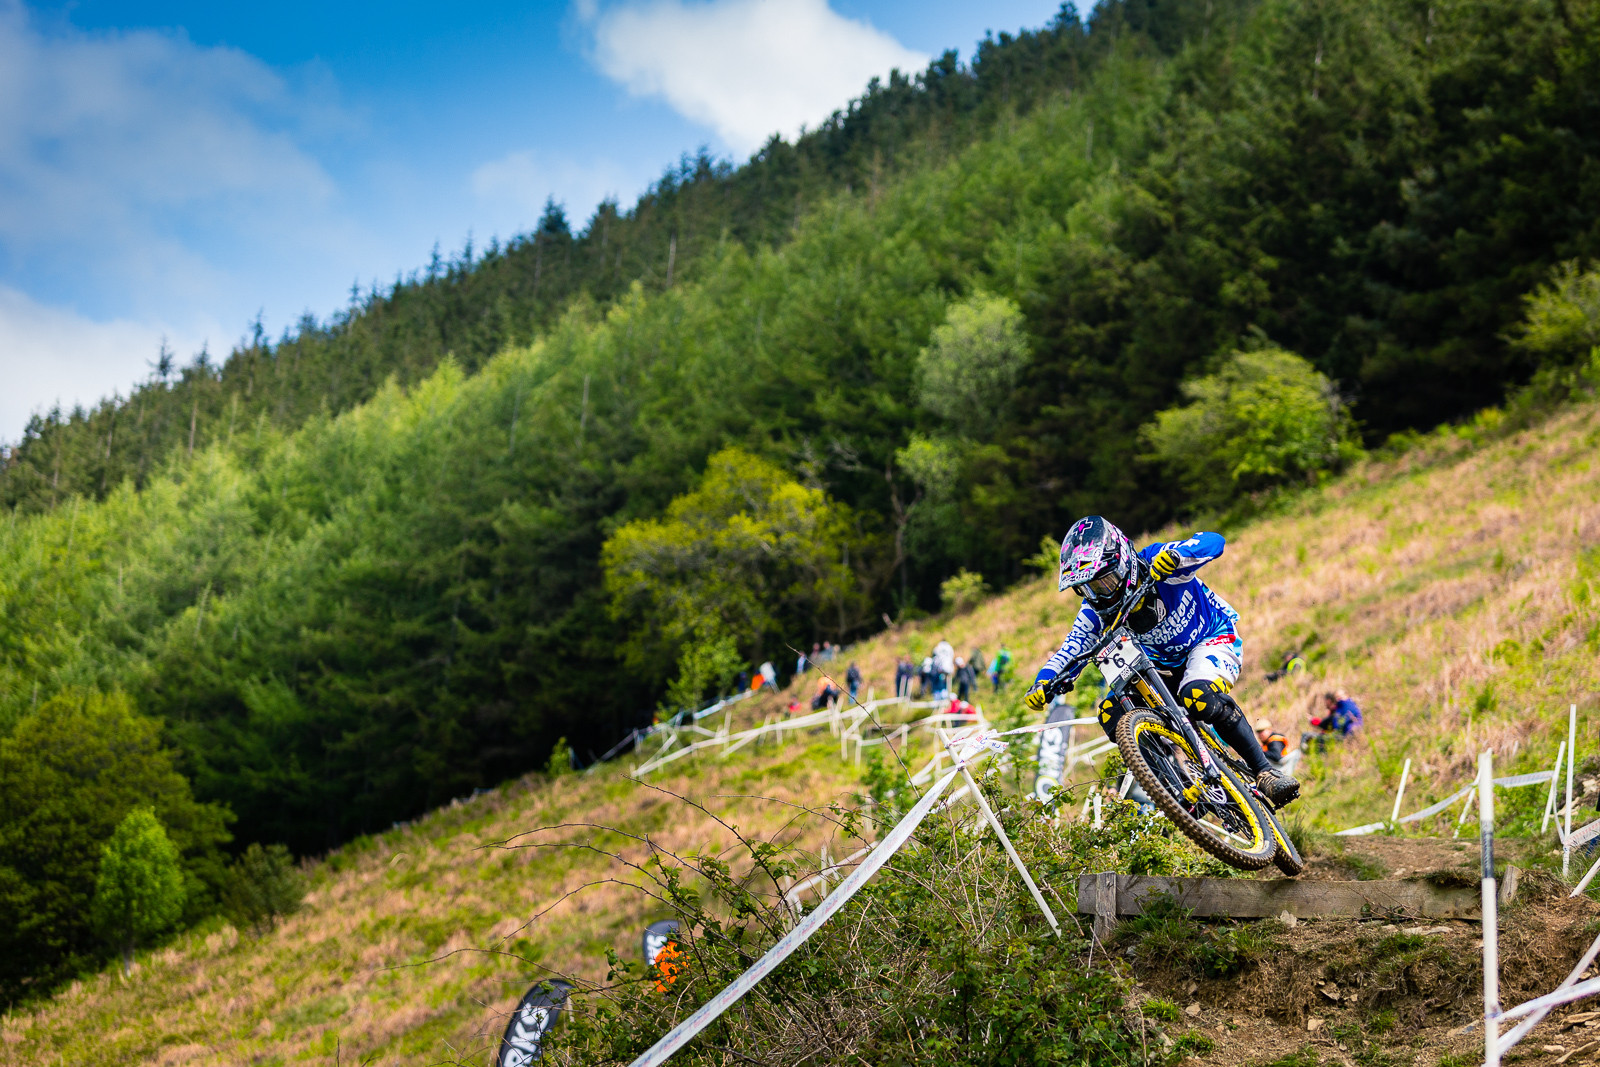 RACE REPORT - British Downhill Series, Llangollen - Joe Smith, 1st Place  - RACE REPORT - British Downhill Series Llangollen - Mountain Biking Pictures - Vital MTB